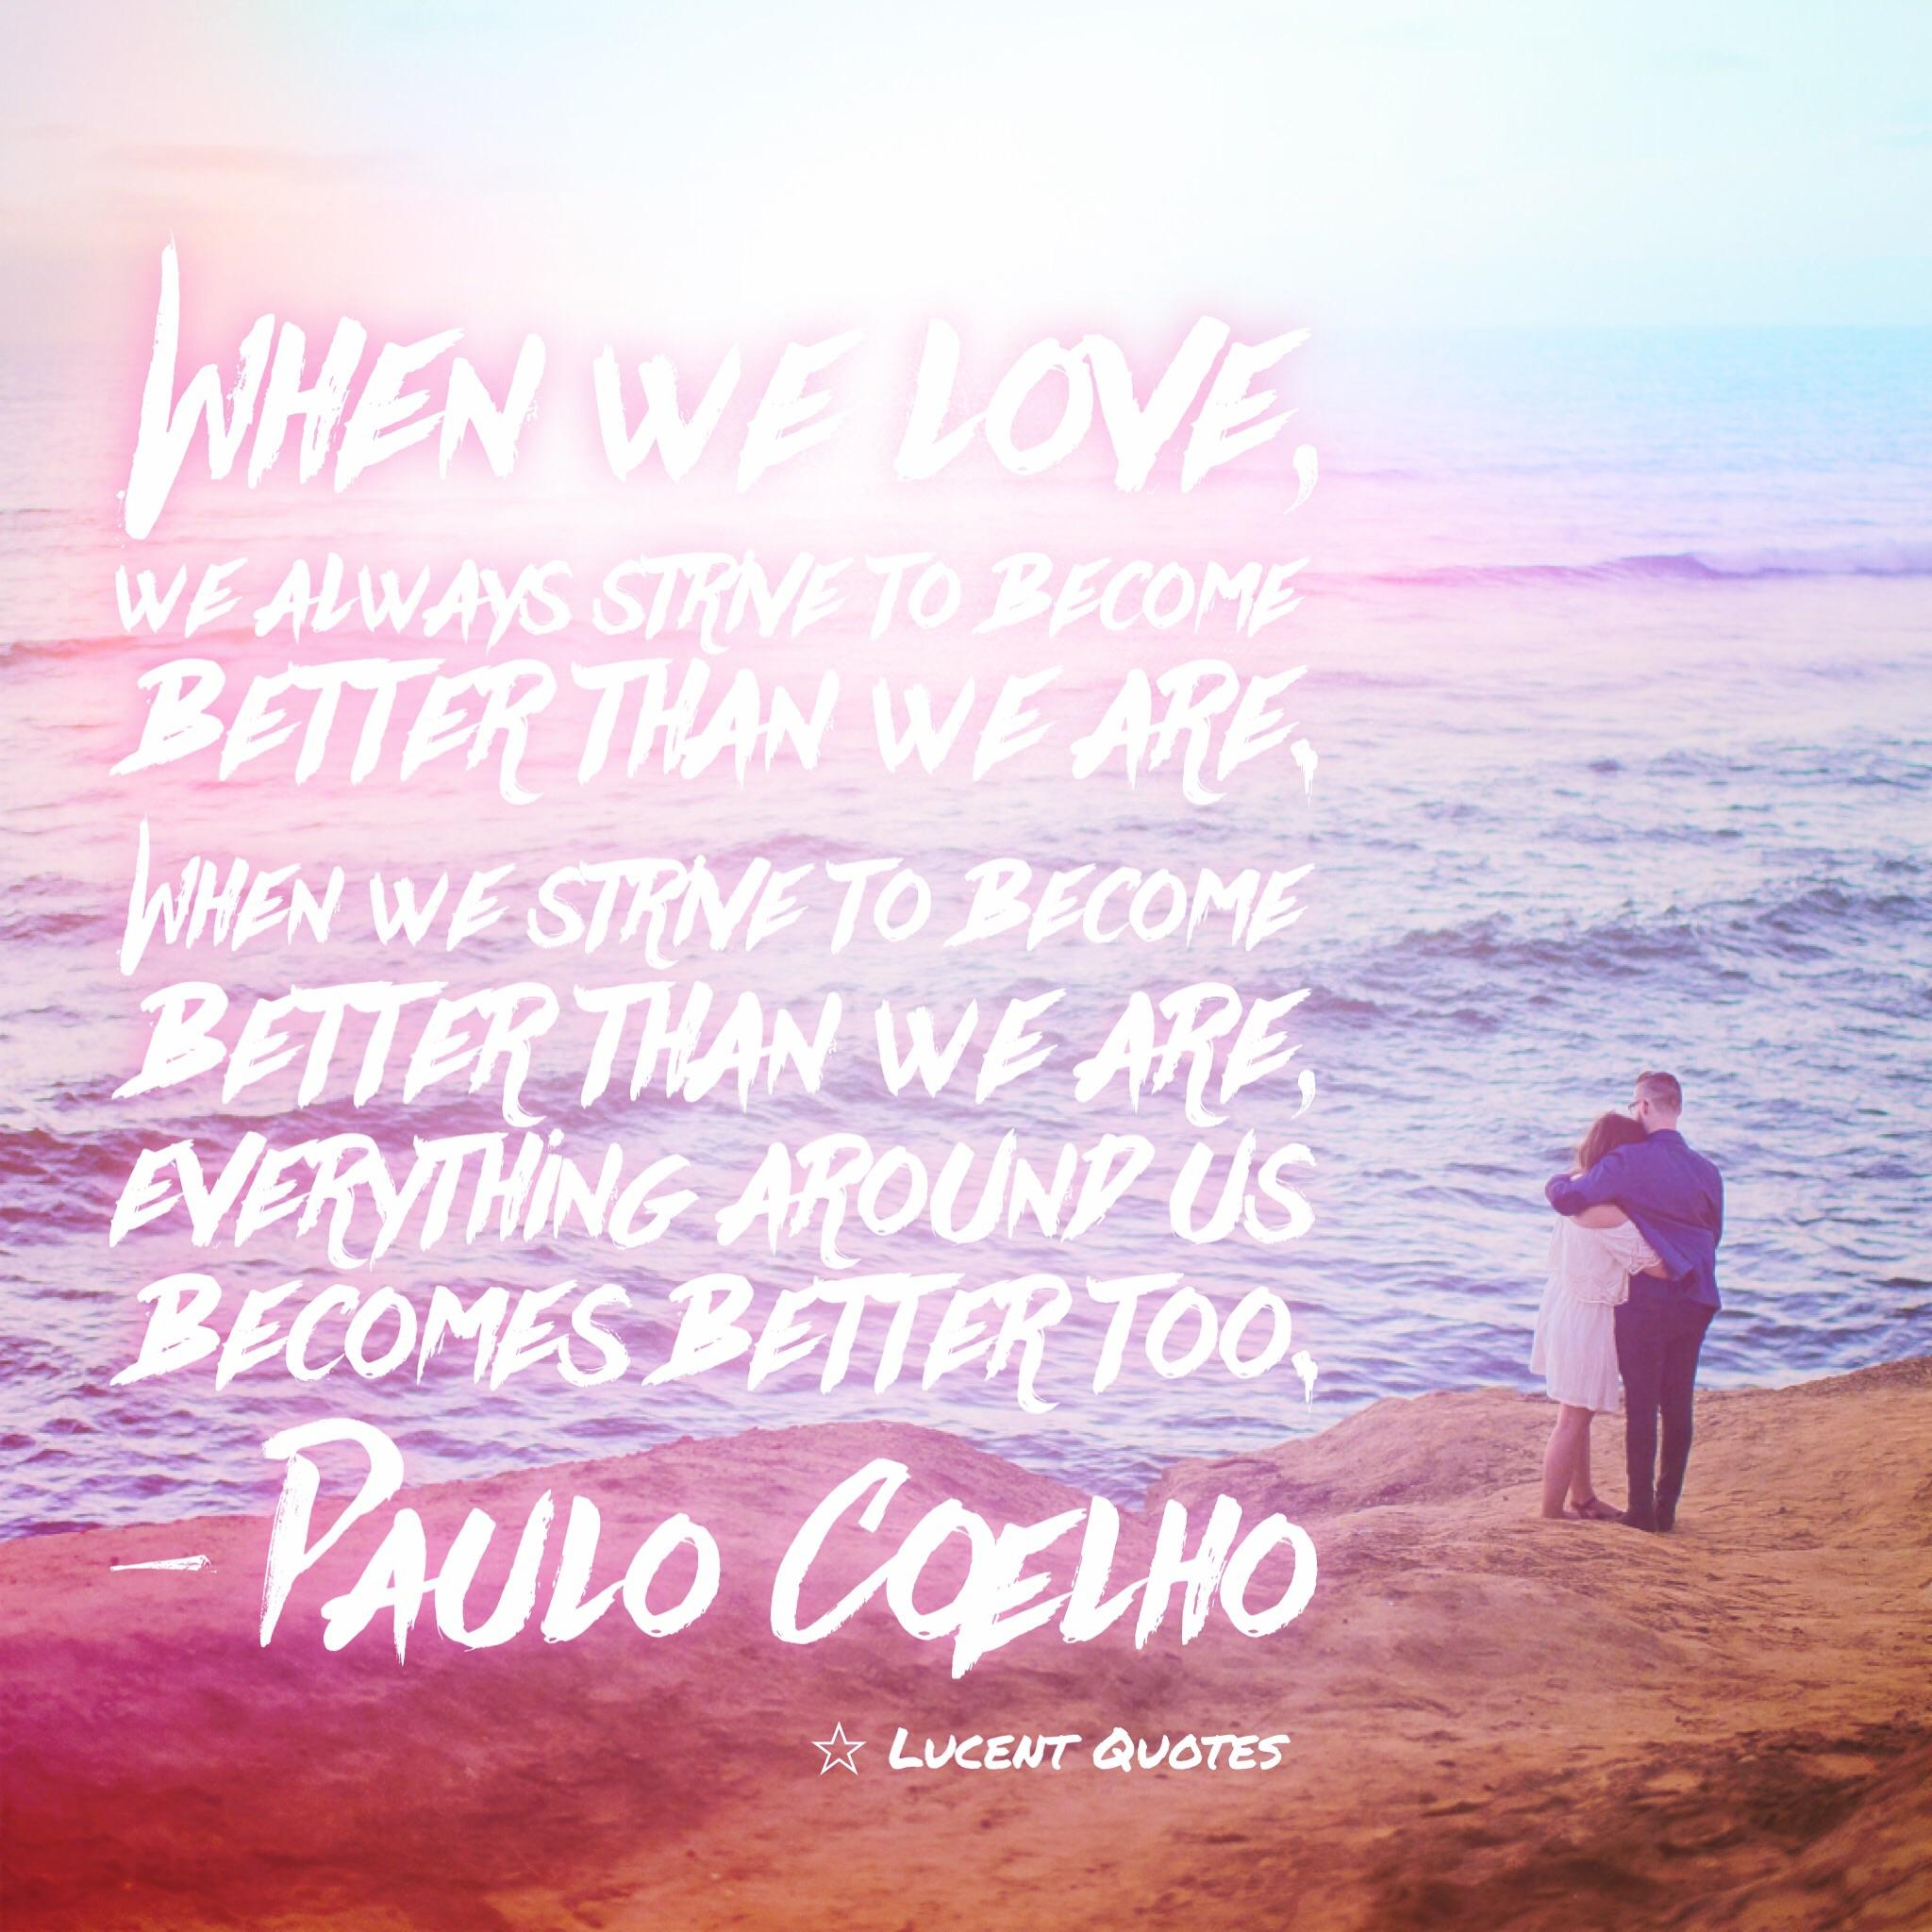 When we love, we always strive to become better than we are. When we strive to become better than we are, everything around us becomes better too. – Paulo Coelho [600×600][OC ig: Lucentquotes]